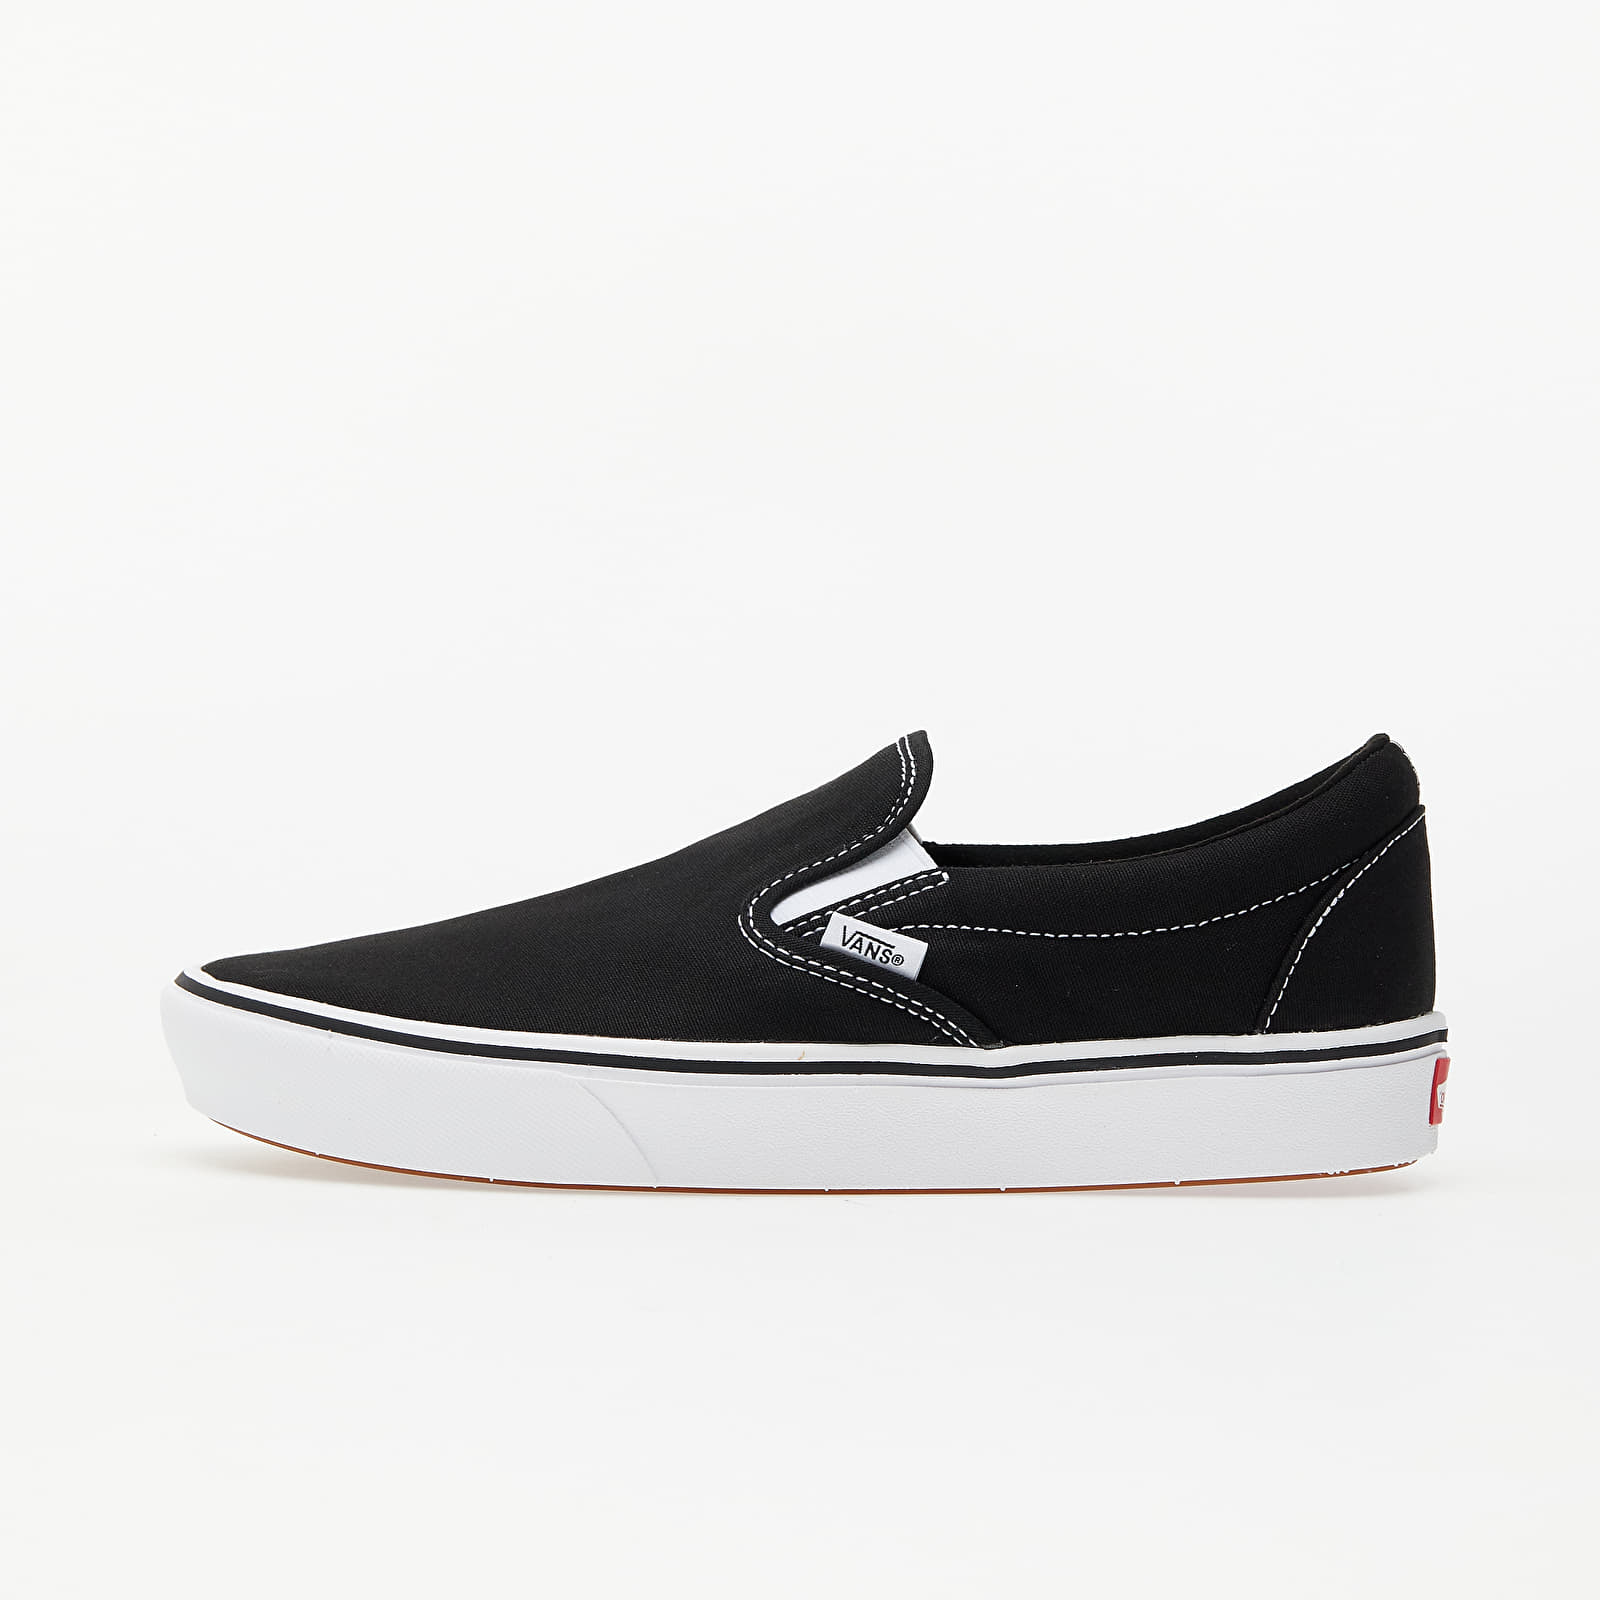 Vans ComfyCush Slip-On (Classic) Black/ True White EUR 36